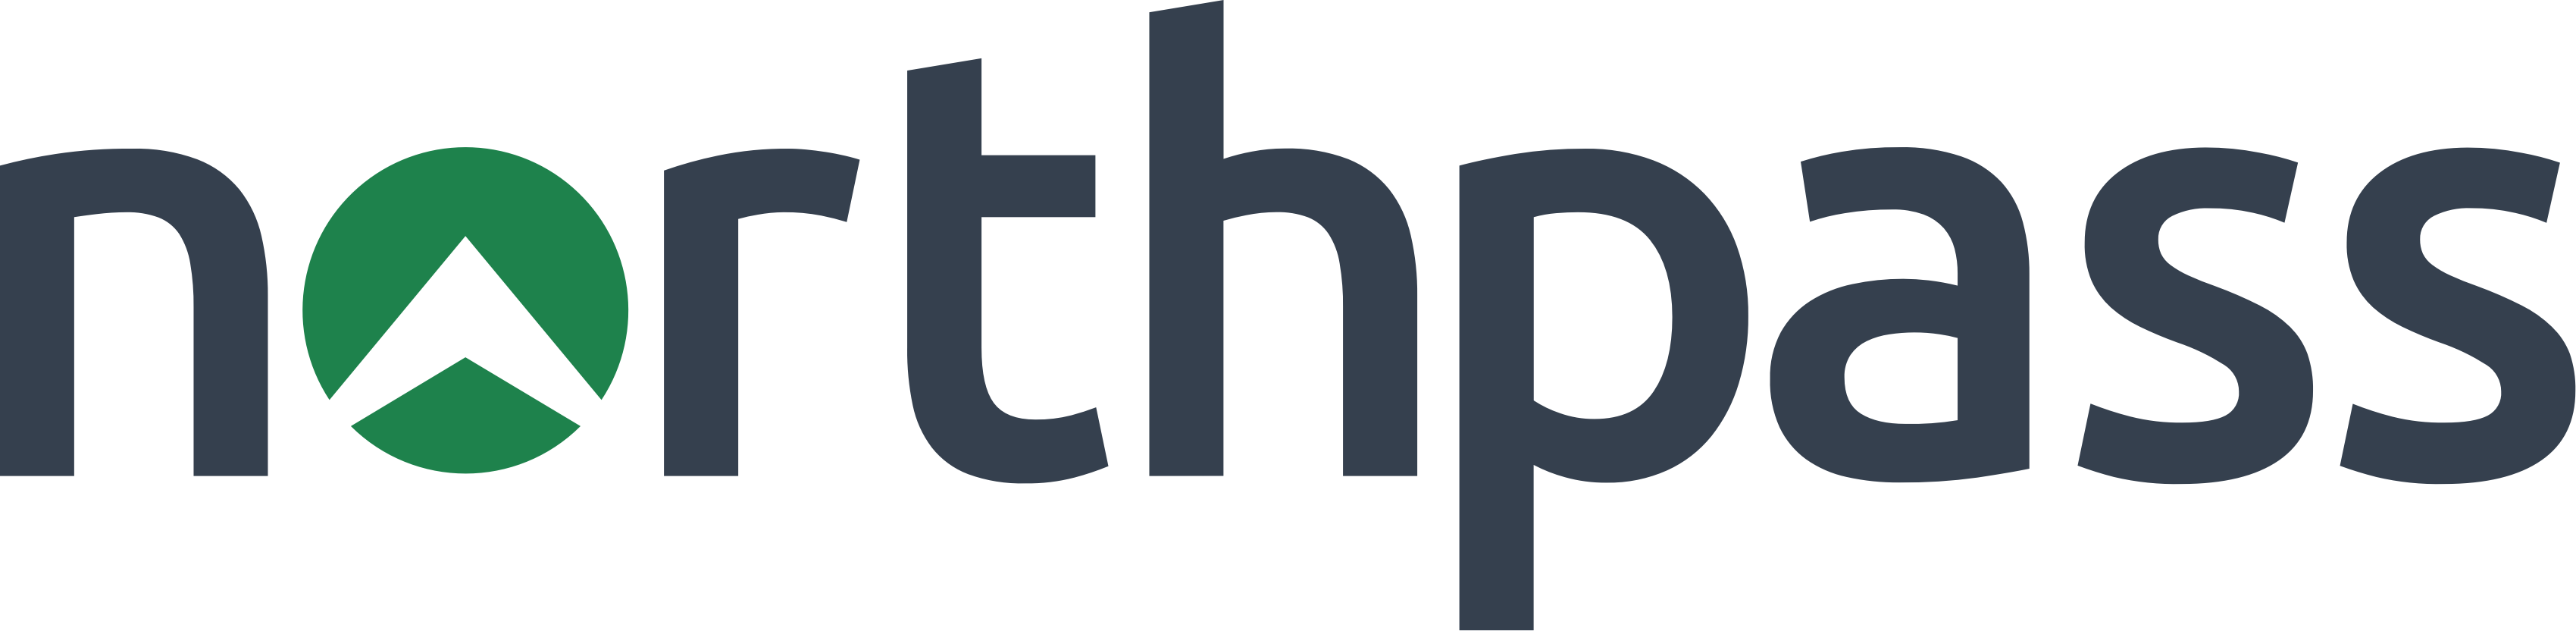 northpass_logo